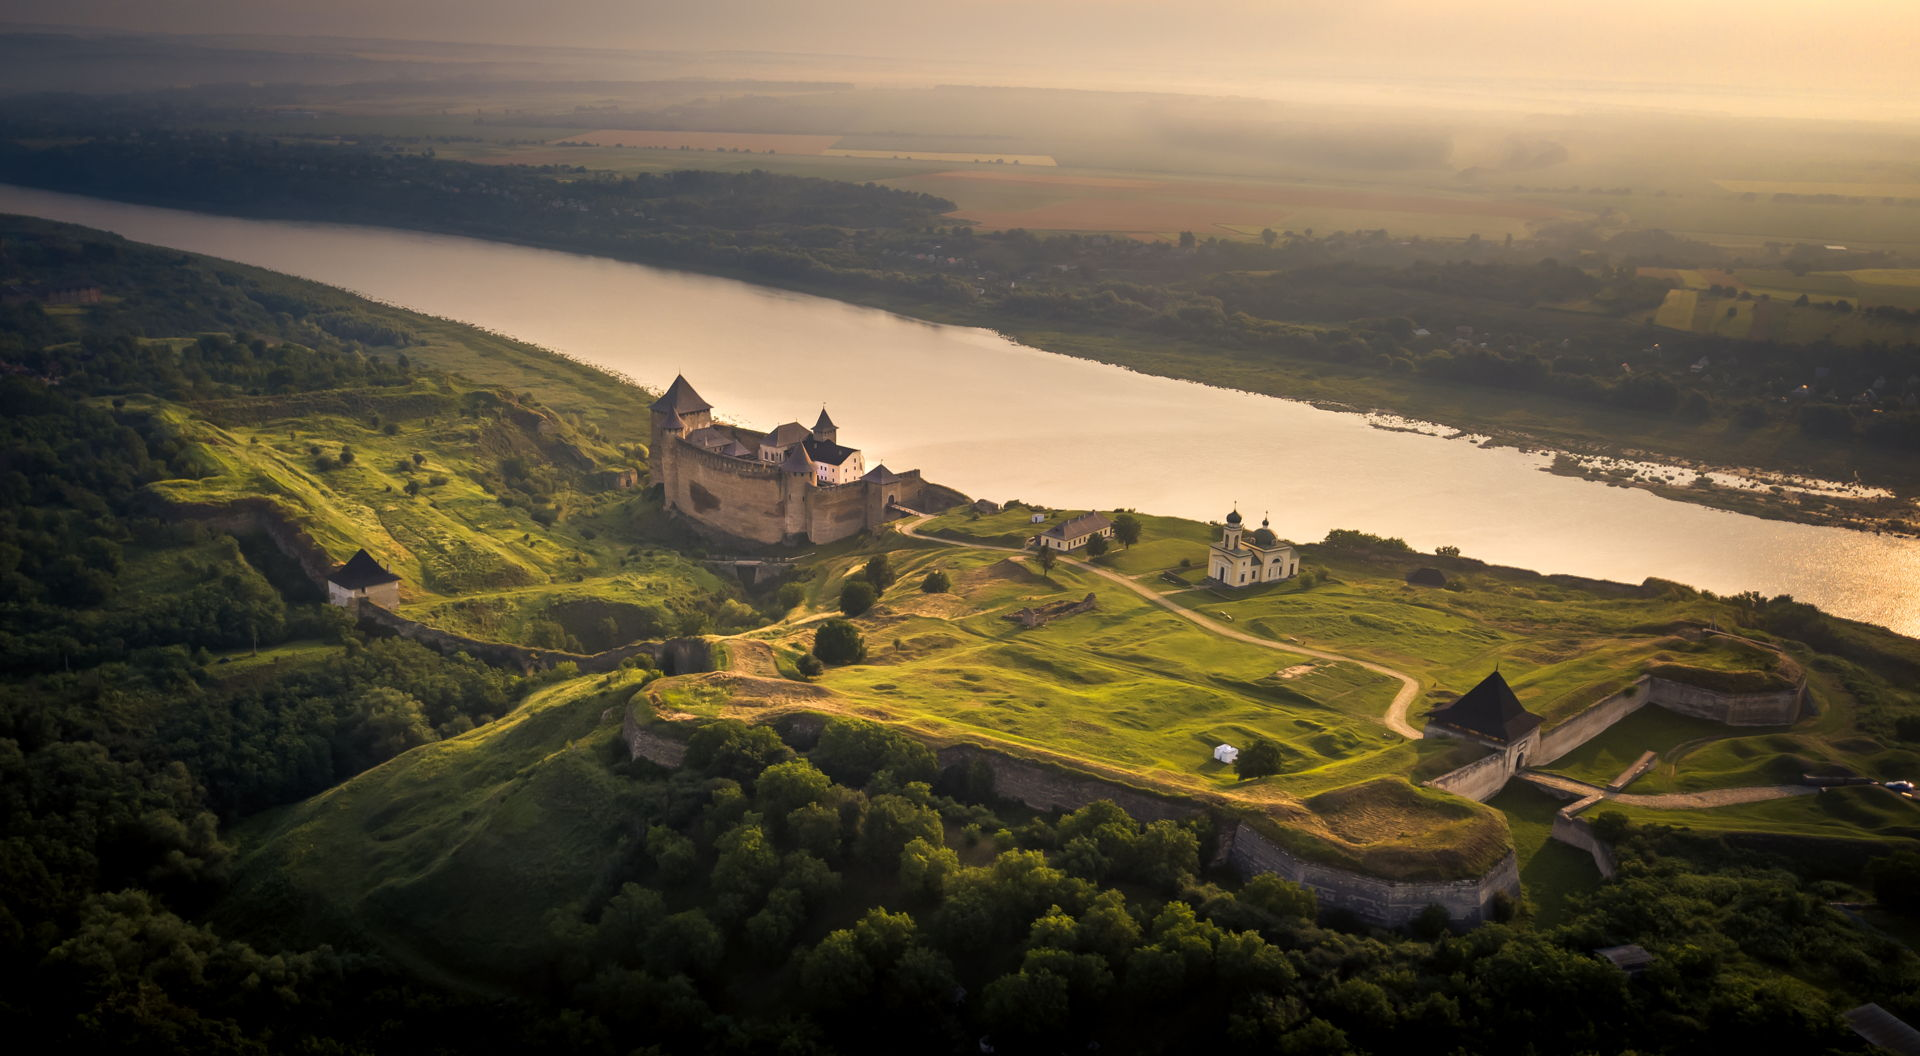 khotyn castle, seven wonders of ukraine, backpacking khotyn, how to get to khotyn, travel around ukraine, ukraine travel, drone khotyn, aerial view of khotyn, outer wall of khotyn, khotyn perimeter